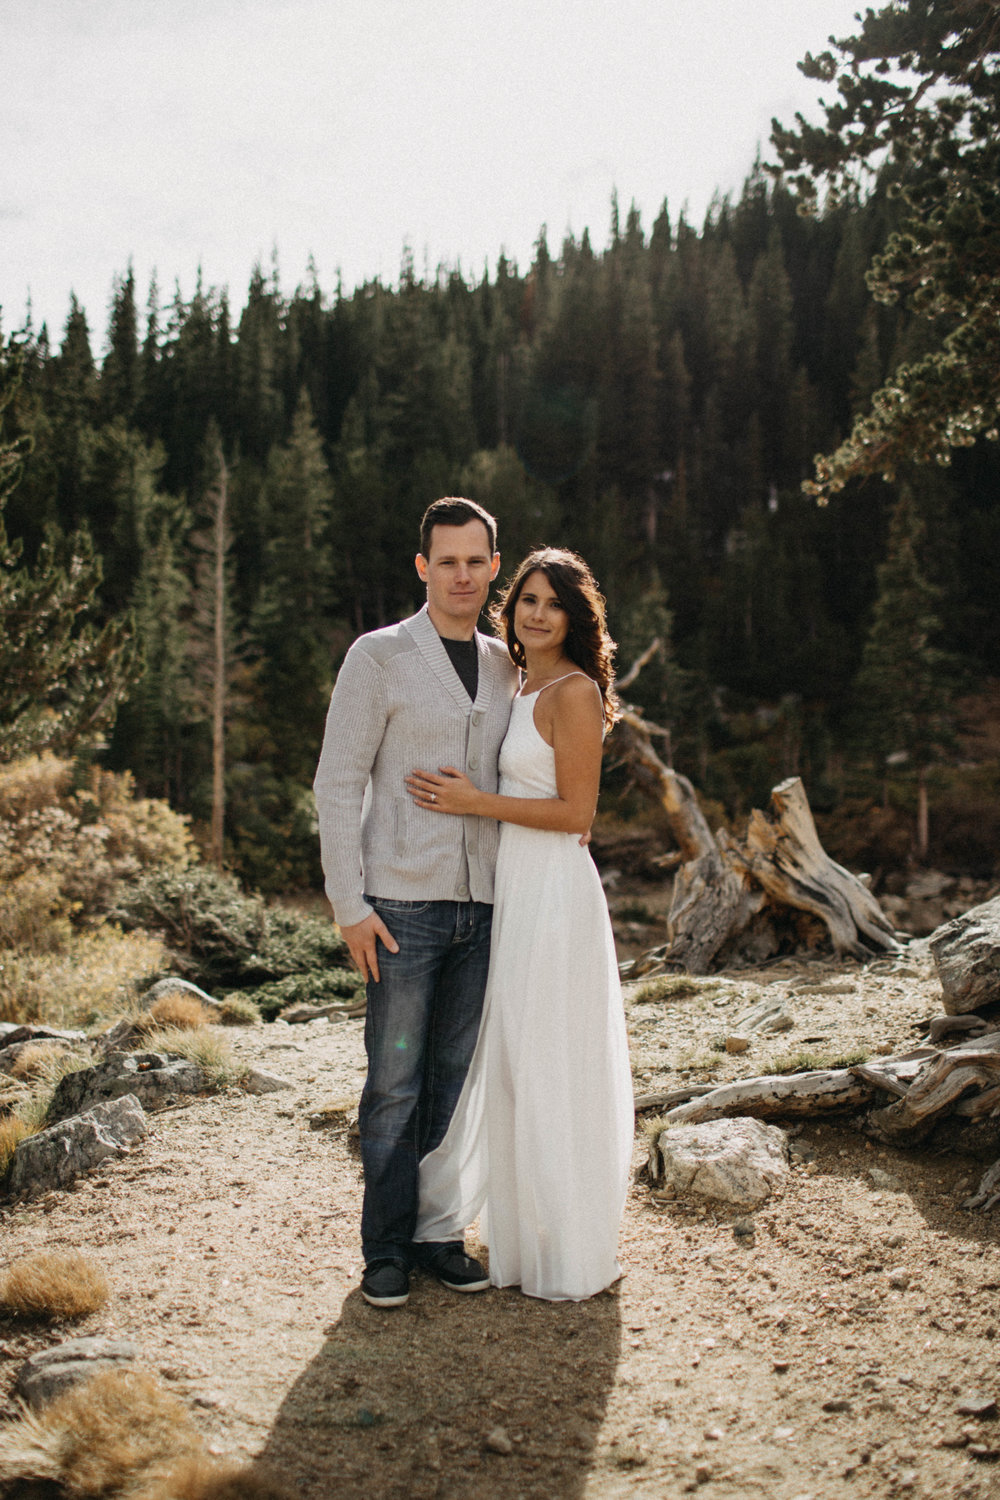 Rocky Mountain Destination Wedding Photographer in Denver, Colorado